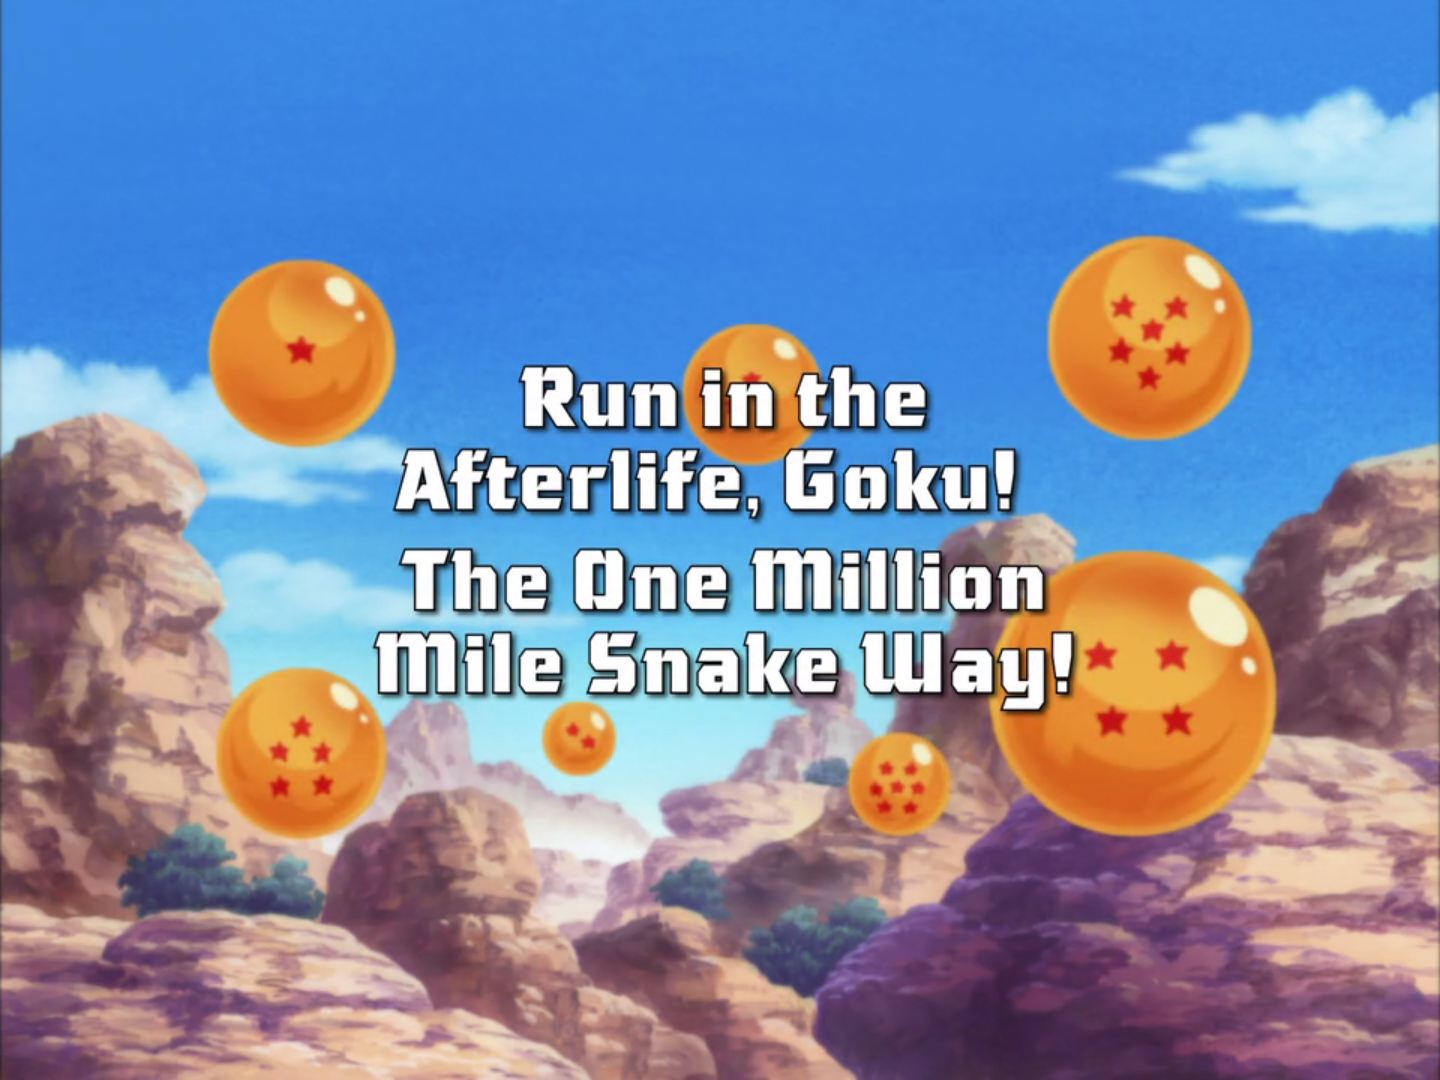 Run in the Afterlife, Goku! The One Million Mile Snake Way!